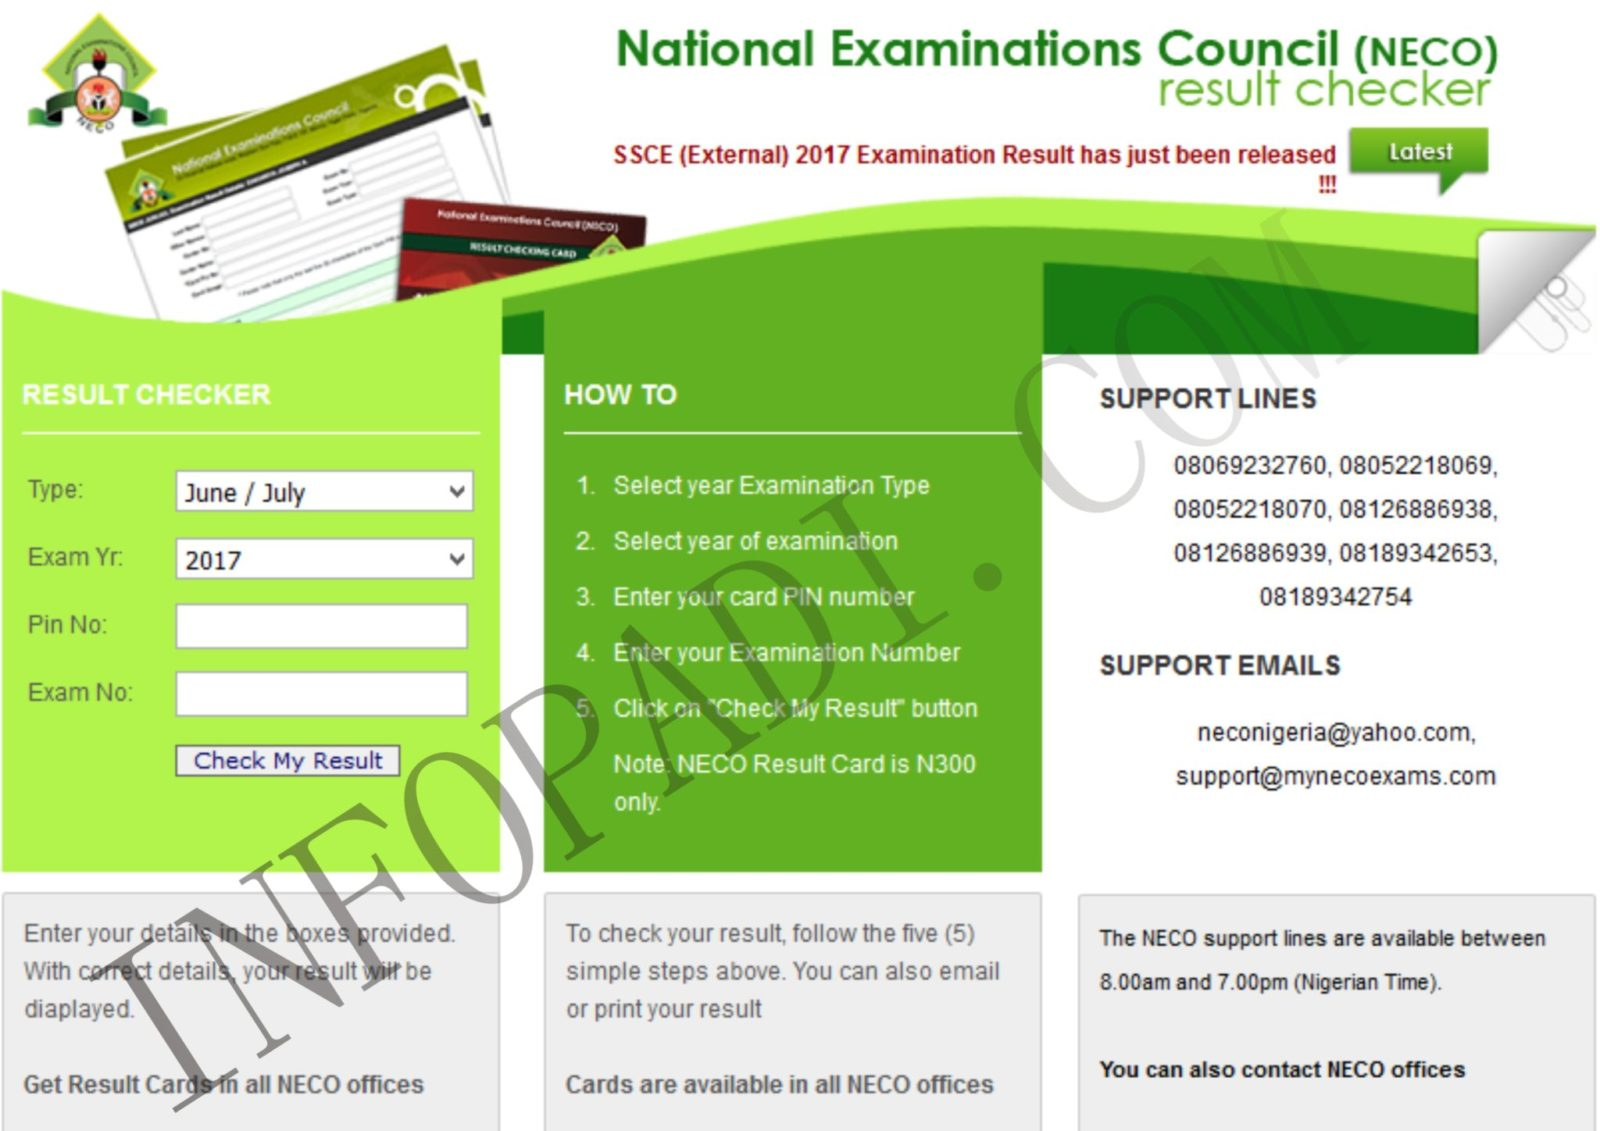 NECO RESULT CHECKER 2019/2020- How to check and print out your NECO result- mynecoexams.com